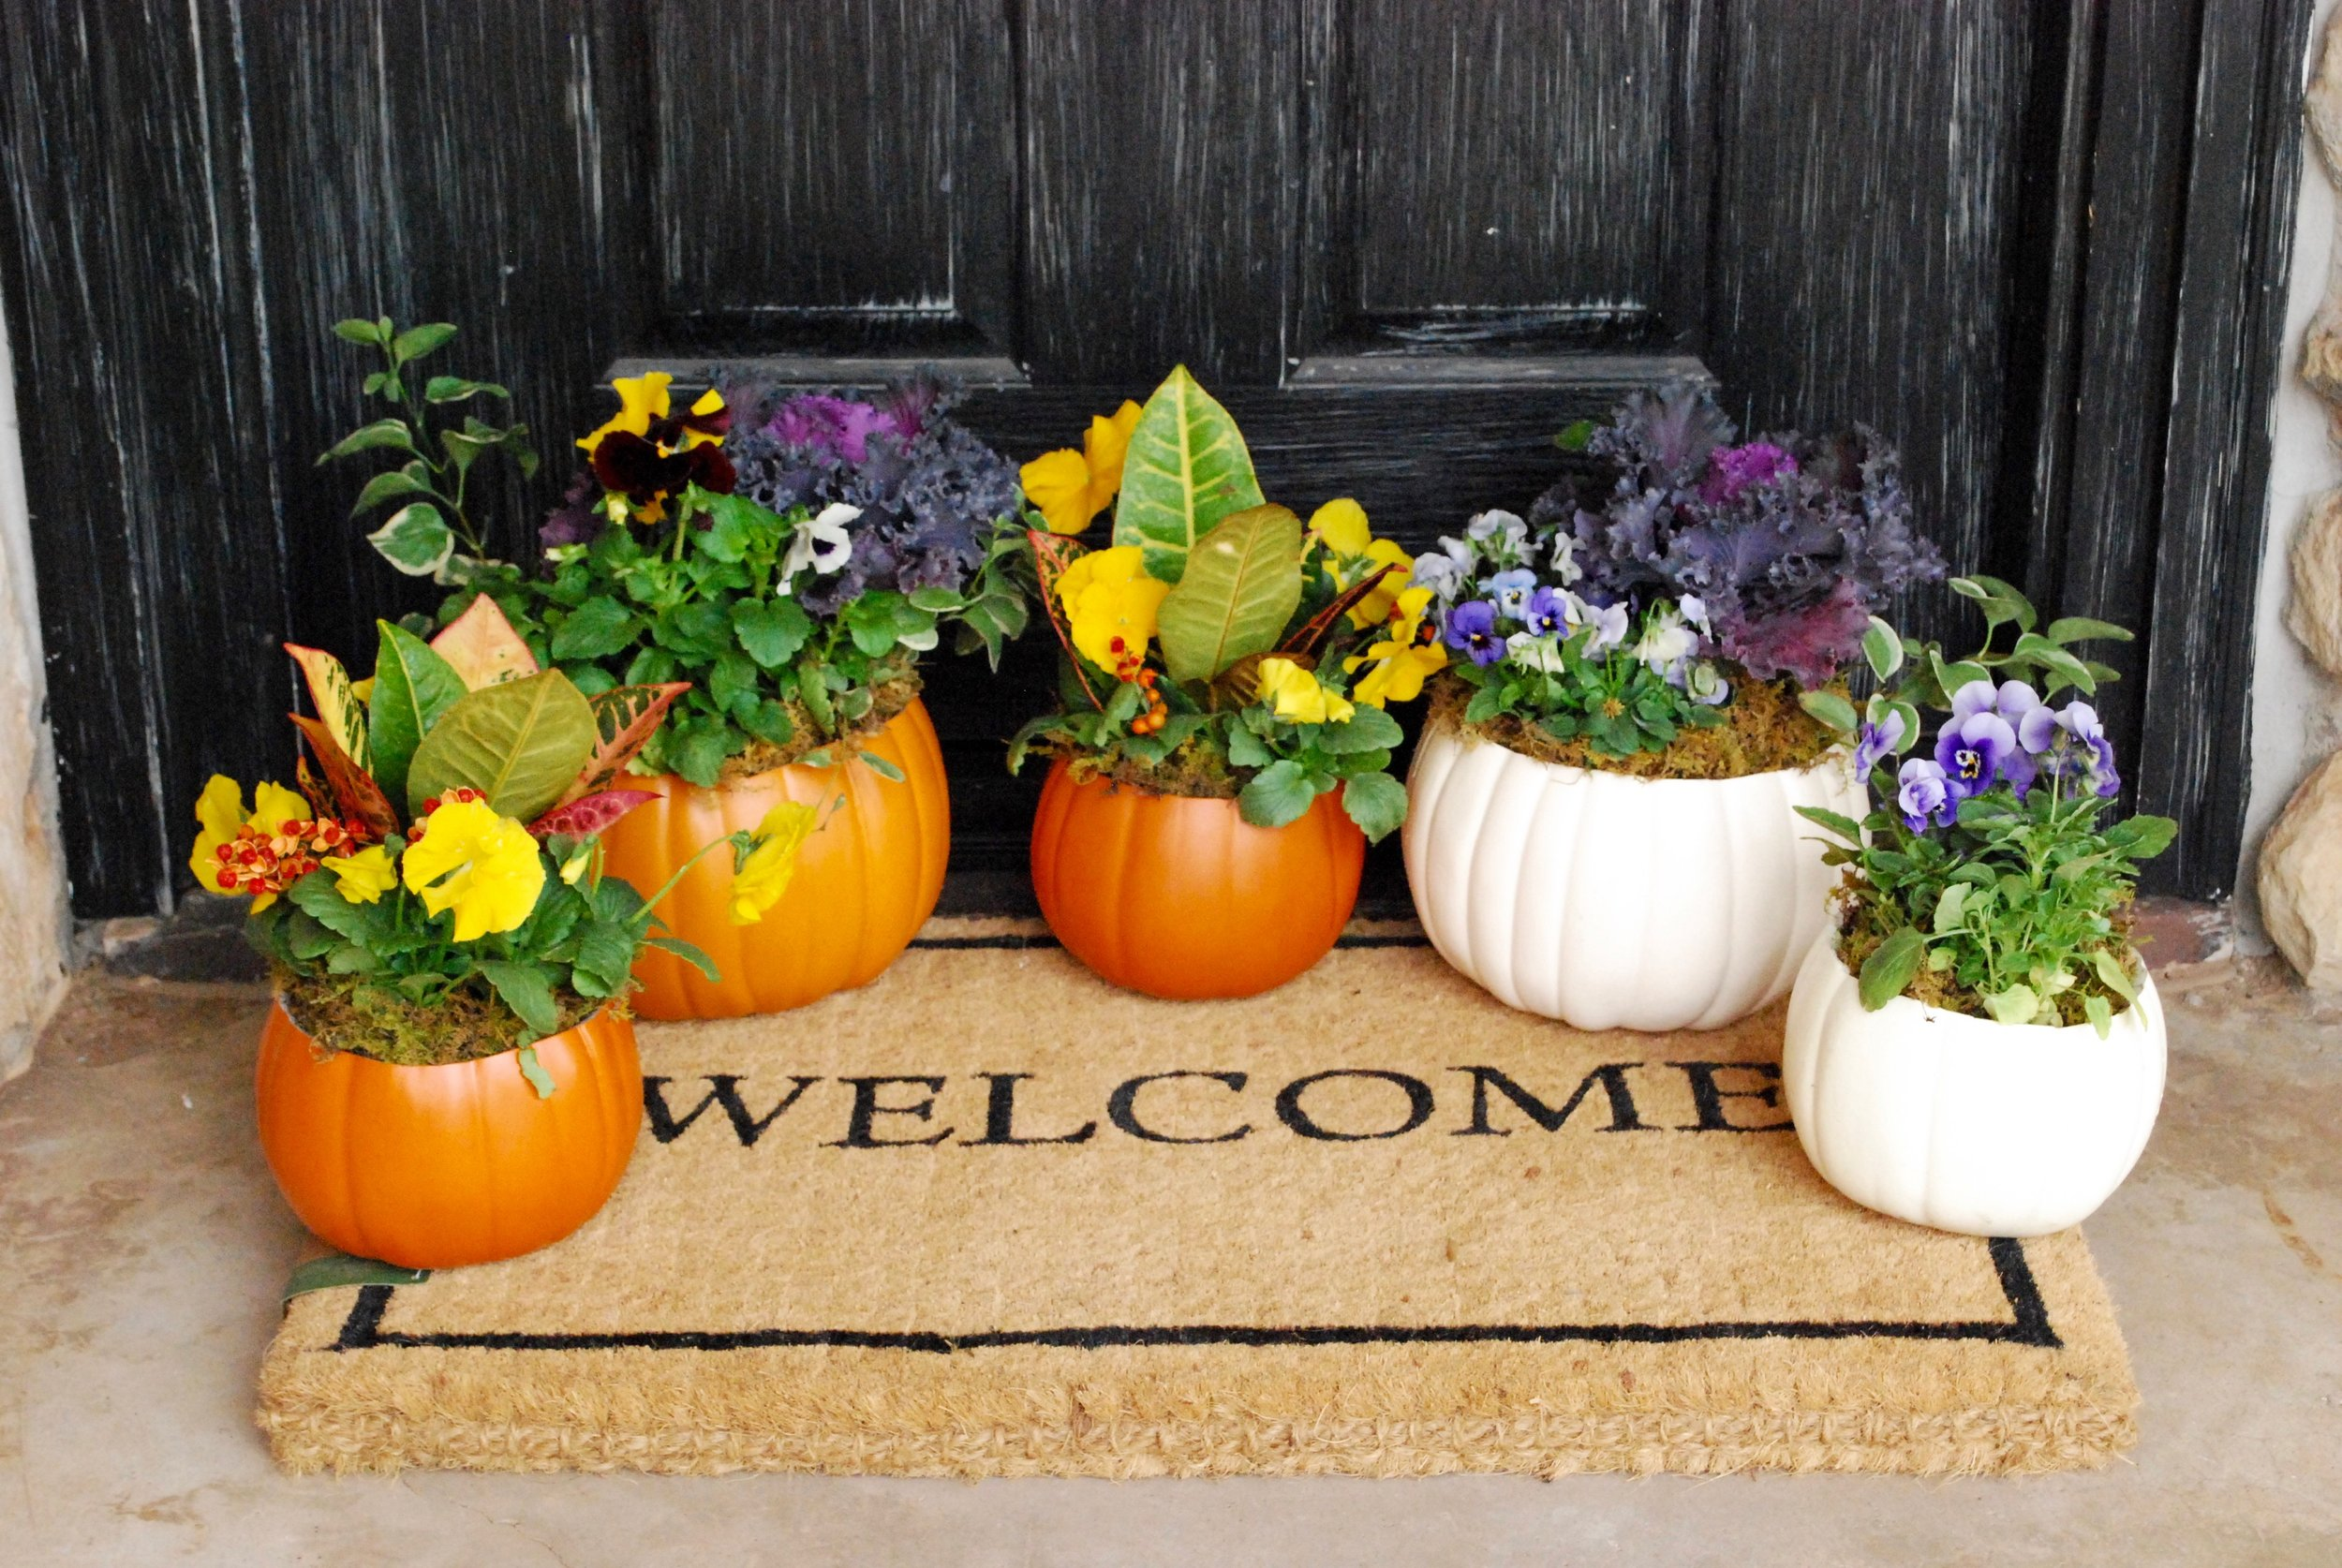 Faux Pumpkin Centerpieces    These pumpkin centerpieces make great teacher or hostess gifts! The small pansy filled faux pumpkin is $18 and the large flower filled faux pumpkin is $35. We're taking preorders now so give us a shout if we can pot some up for you this fall.